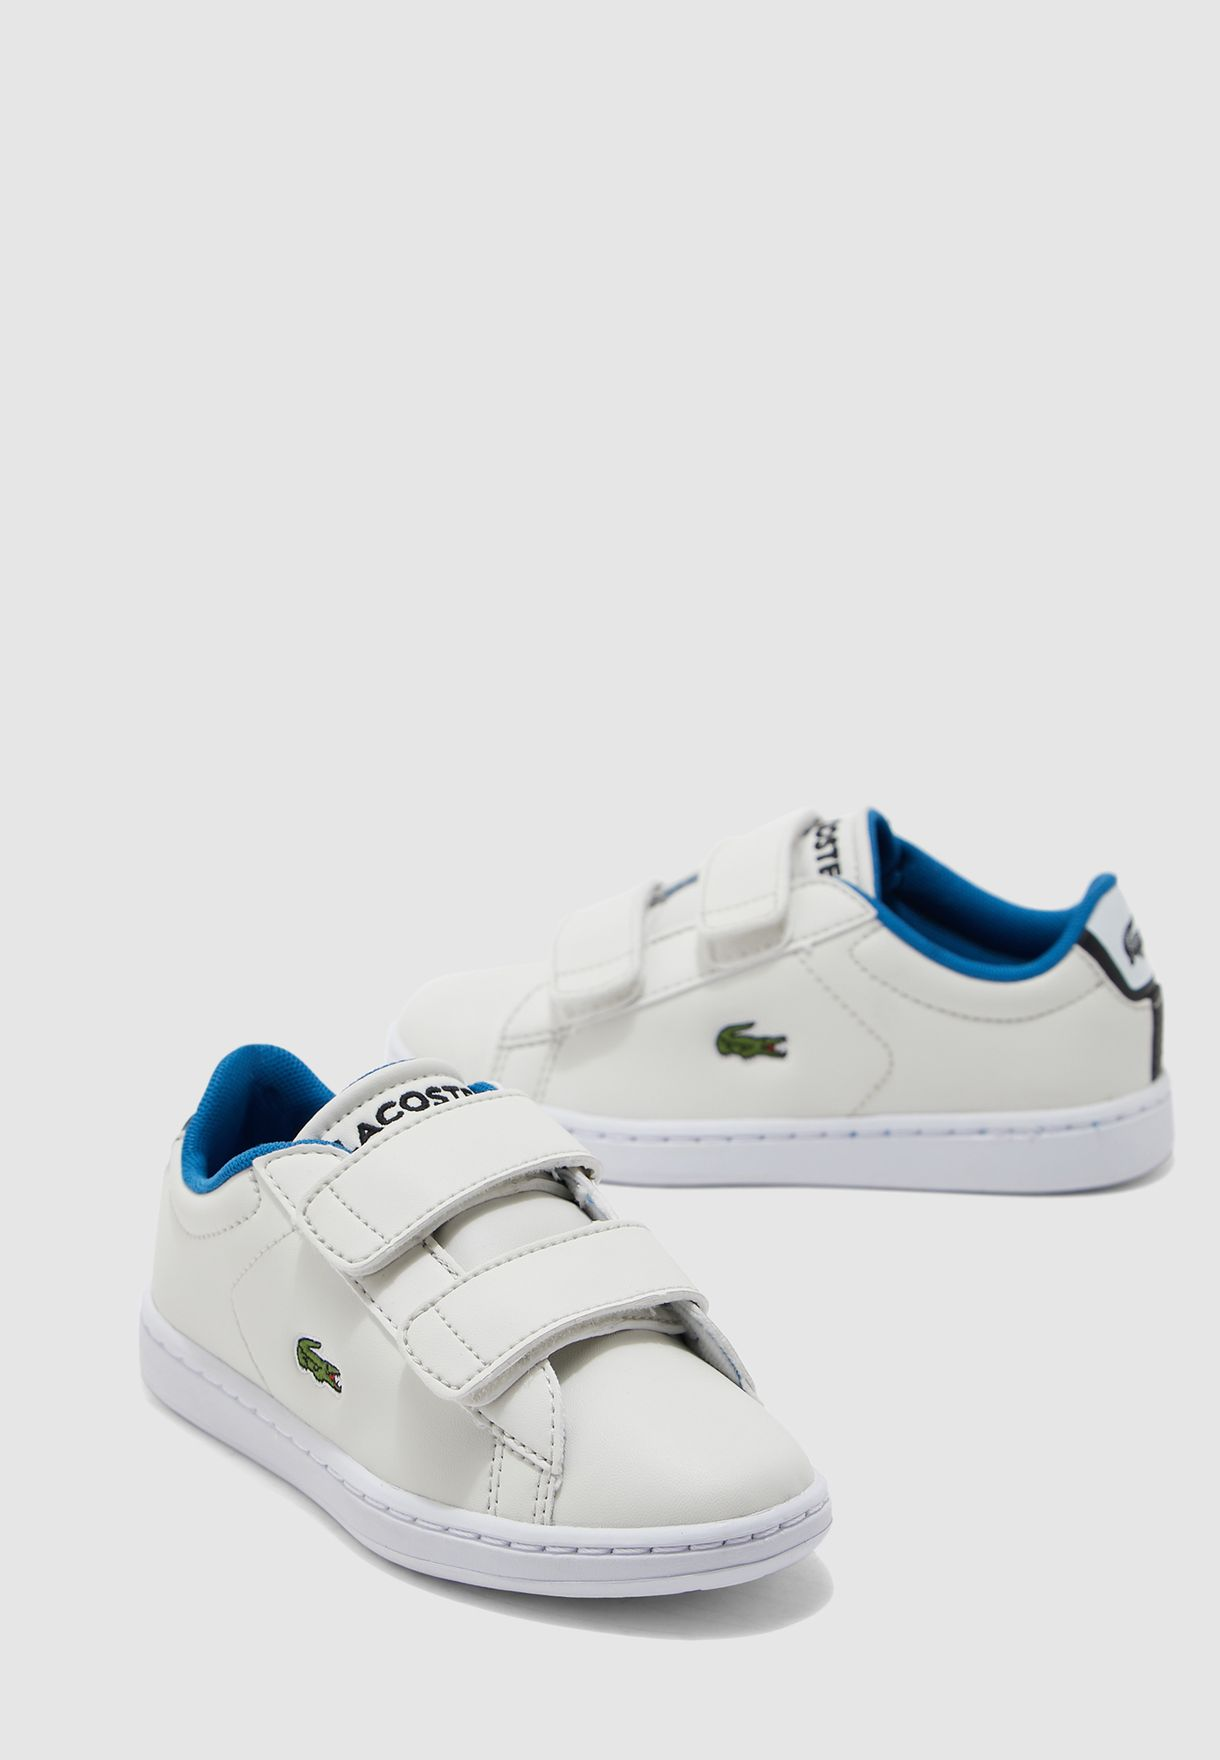 Youth Carnaby Evo Strap 319 1 Sneaker